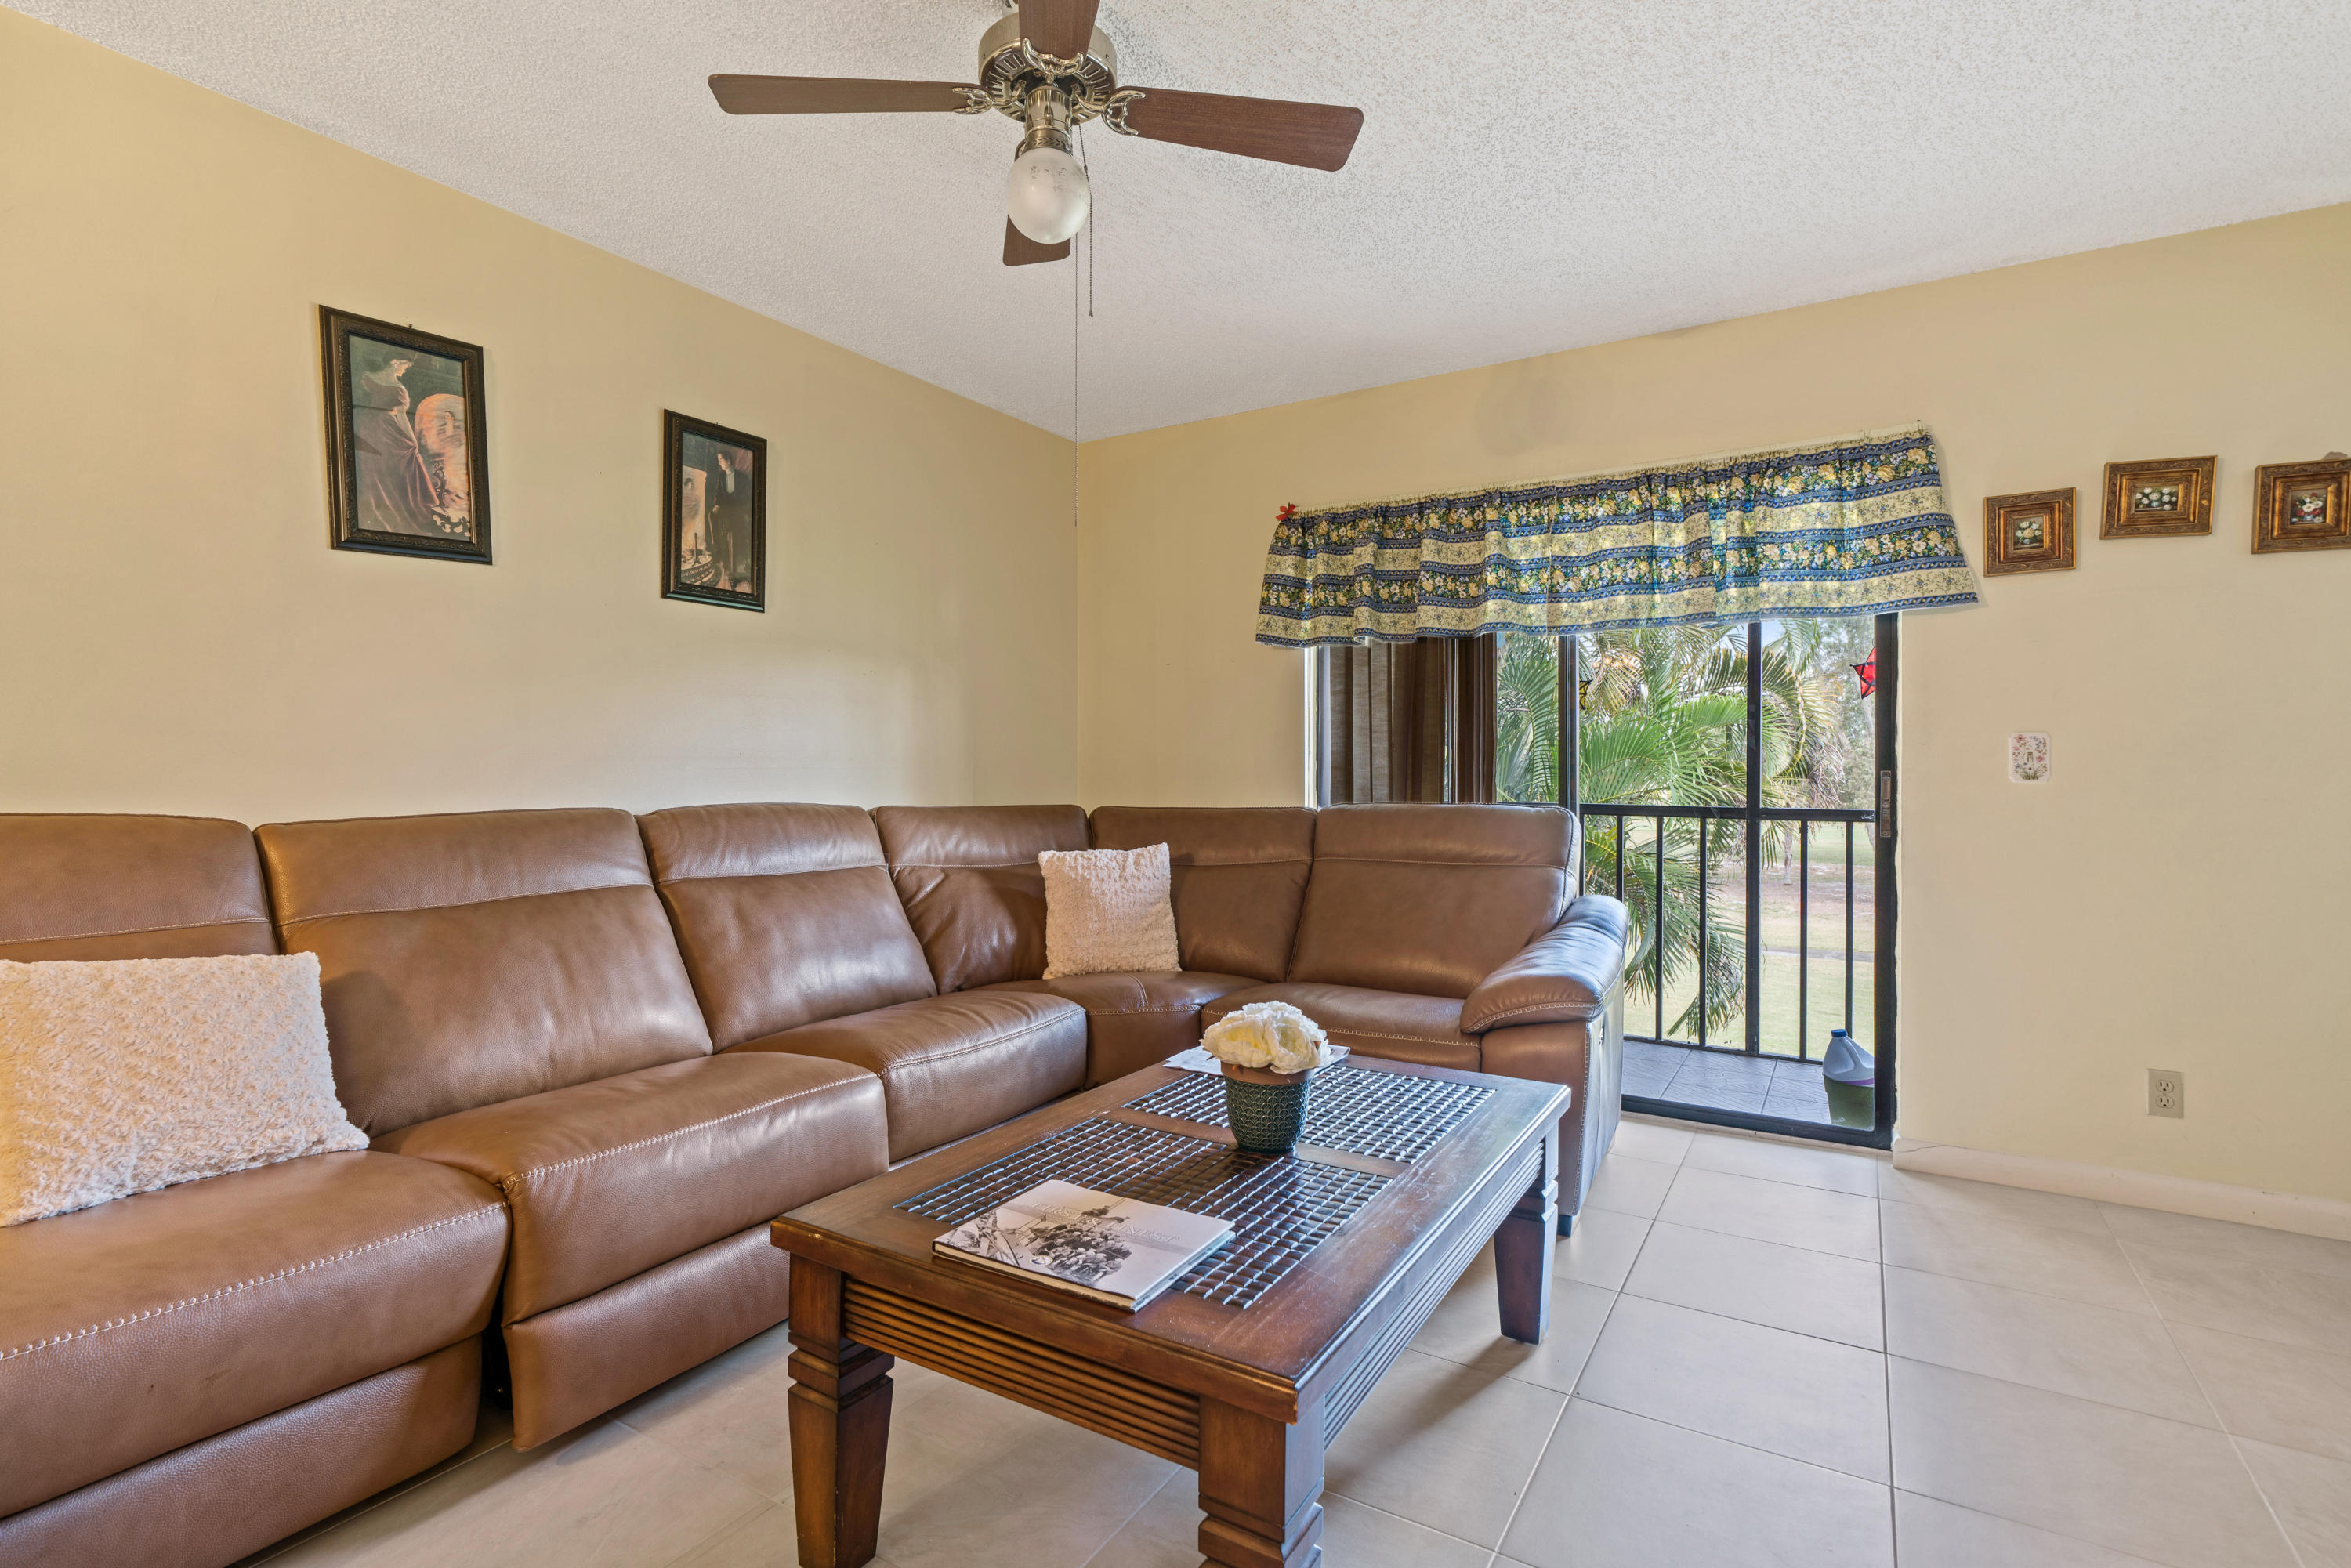 7245 Golf Colony Court 204 Lake Worth, FL 33467 small photo 6